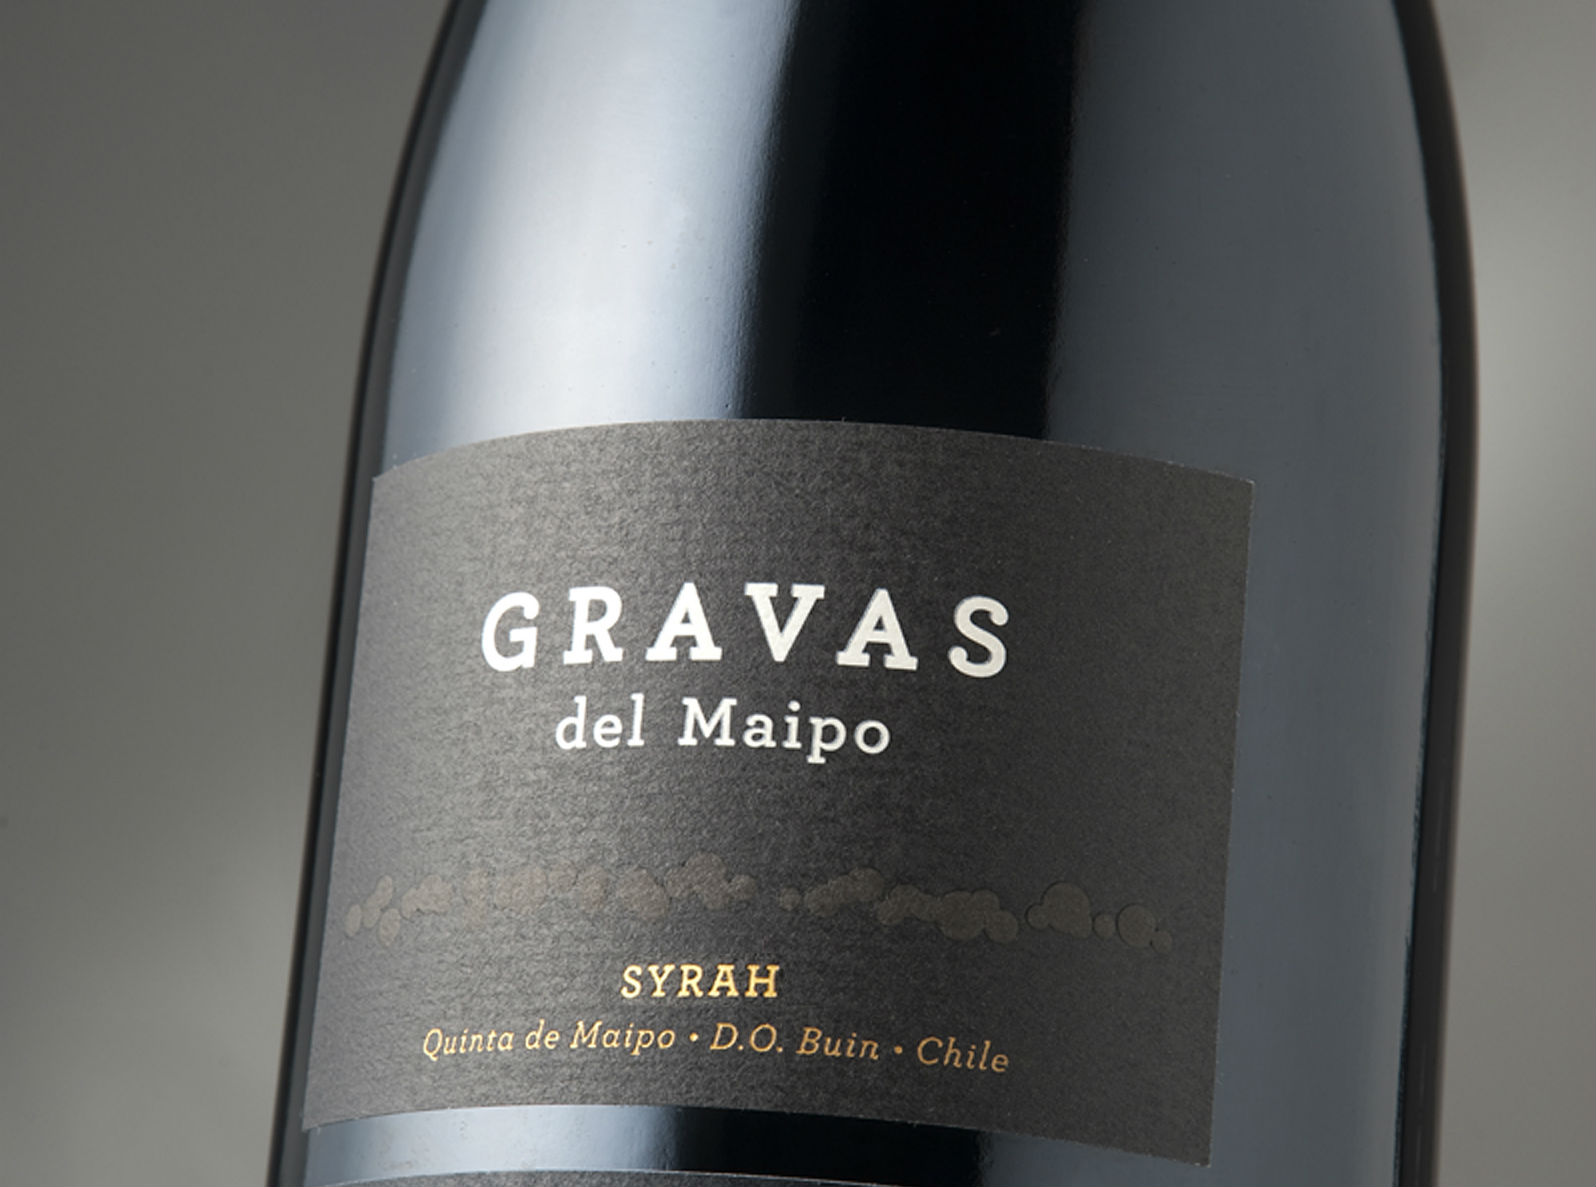 Gravas del Maipo 2016 among the Top 100 Wines of The Andes